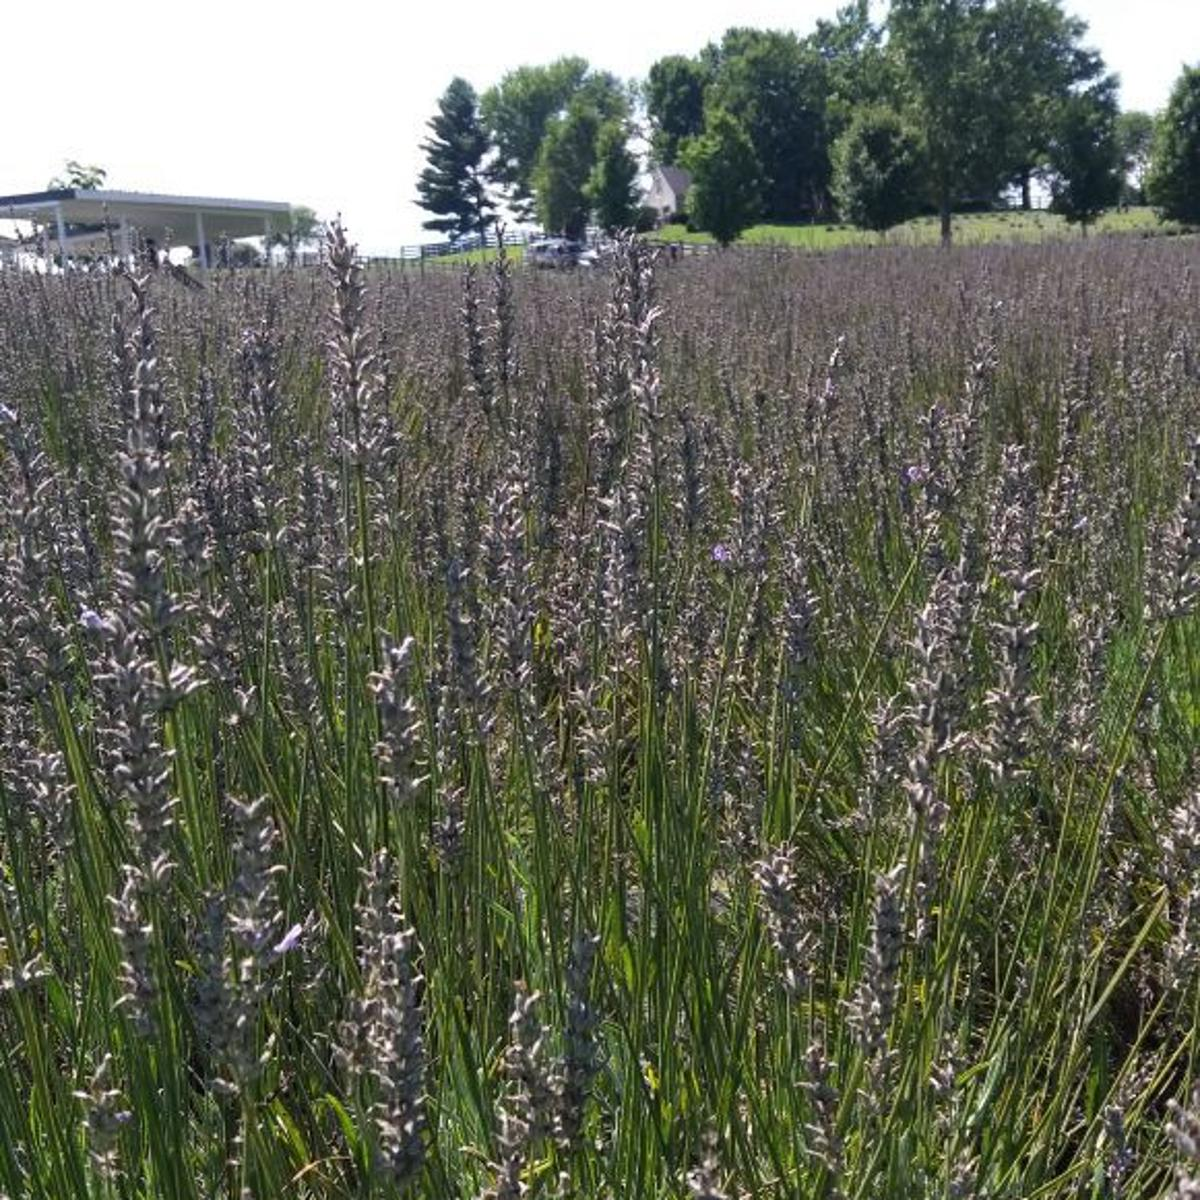 Fanatical Botanical: White Oak Lavender farm caters to